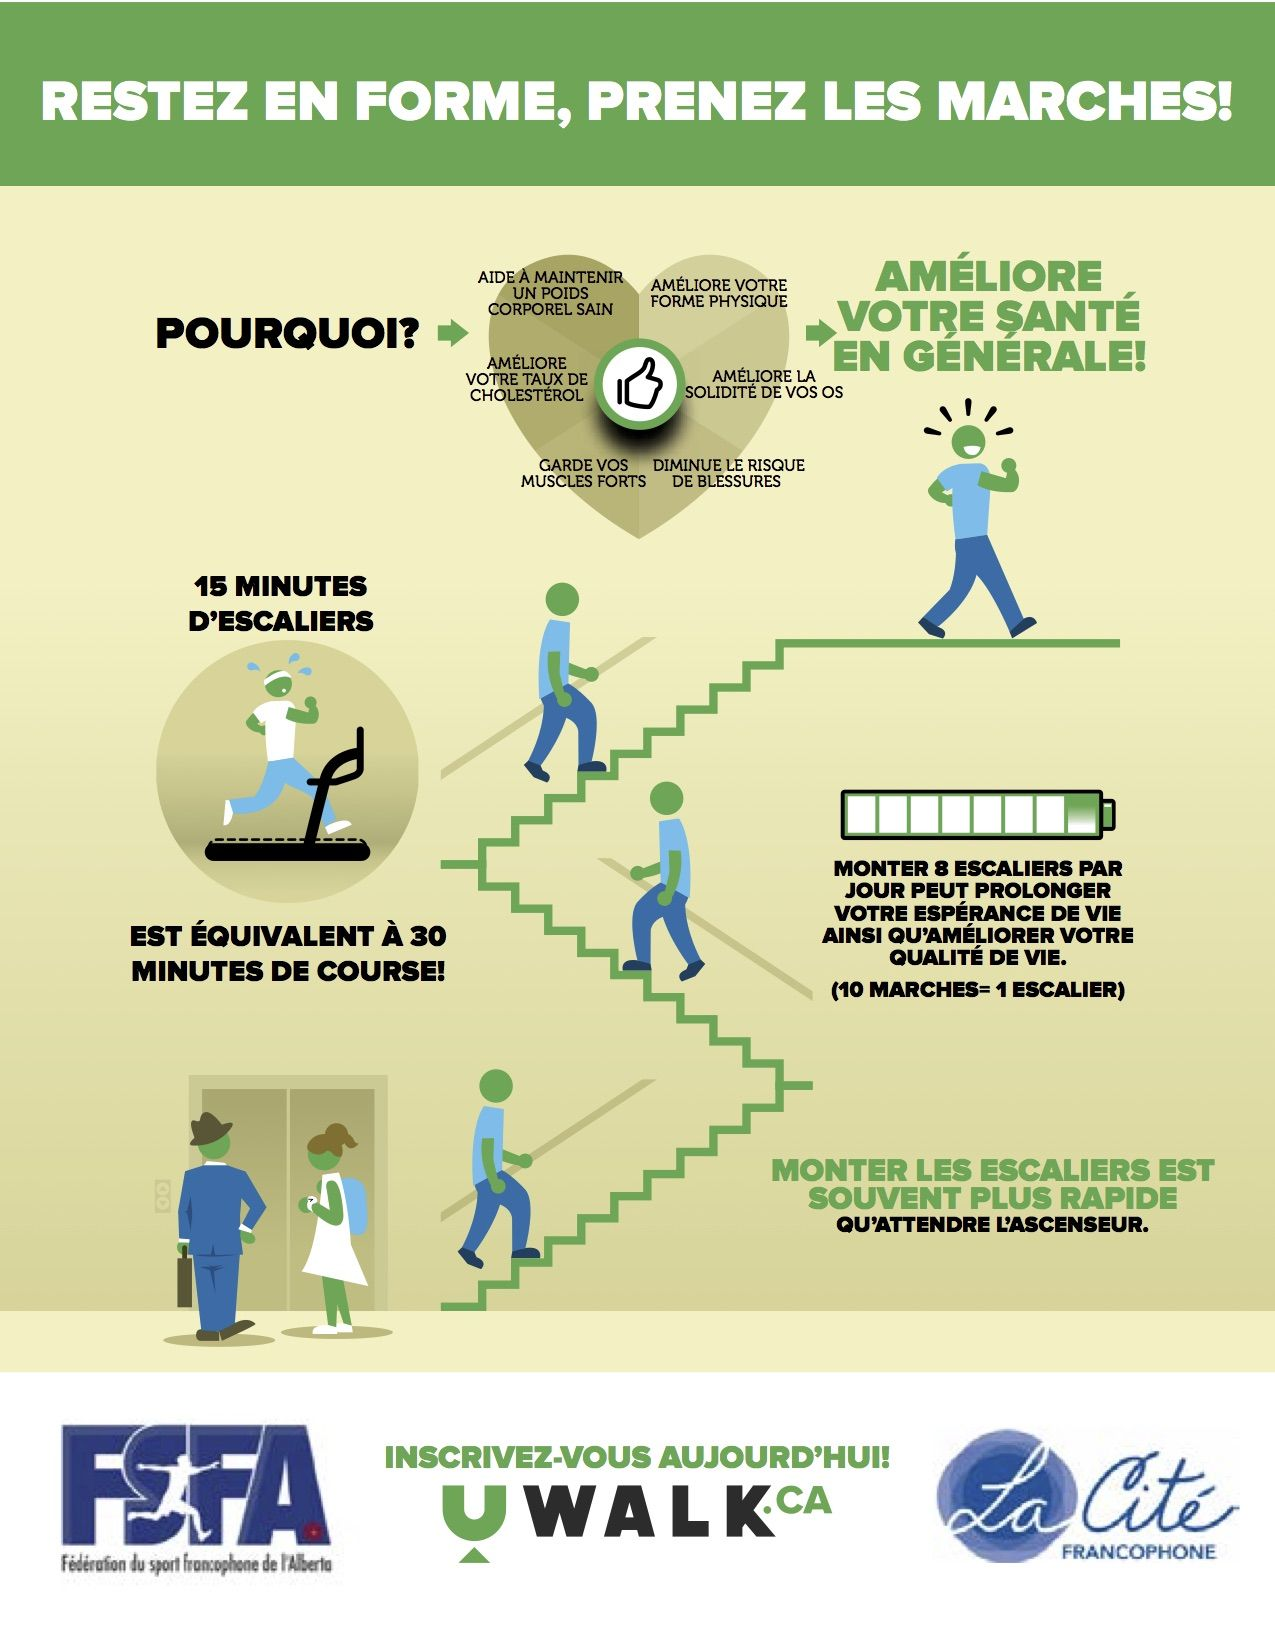 Stair infographic 8.5x11 FRENCH.jpg Stair climbing